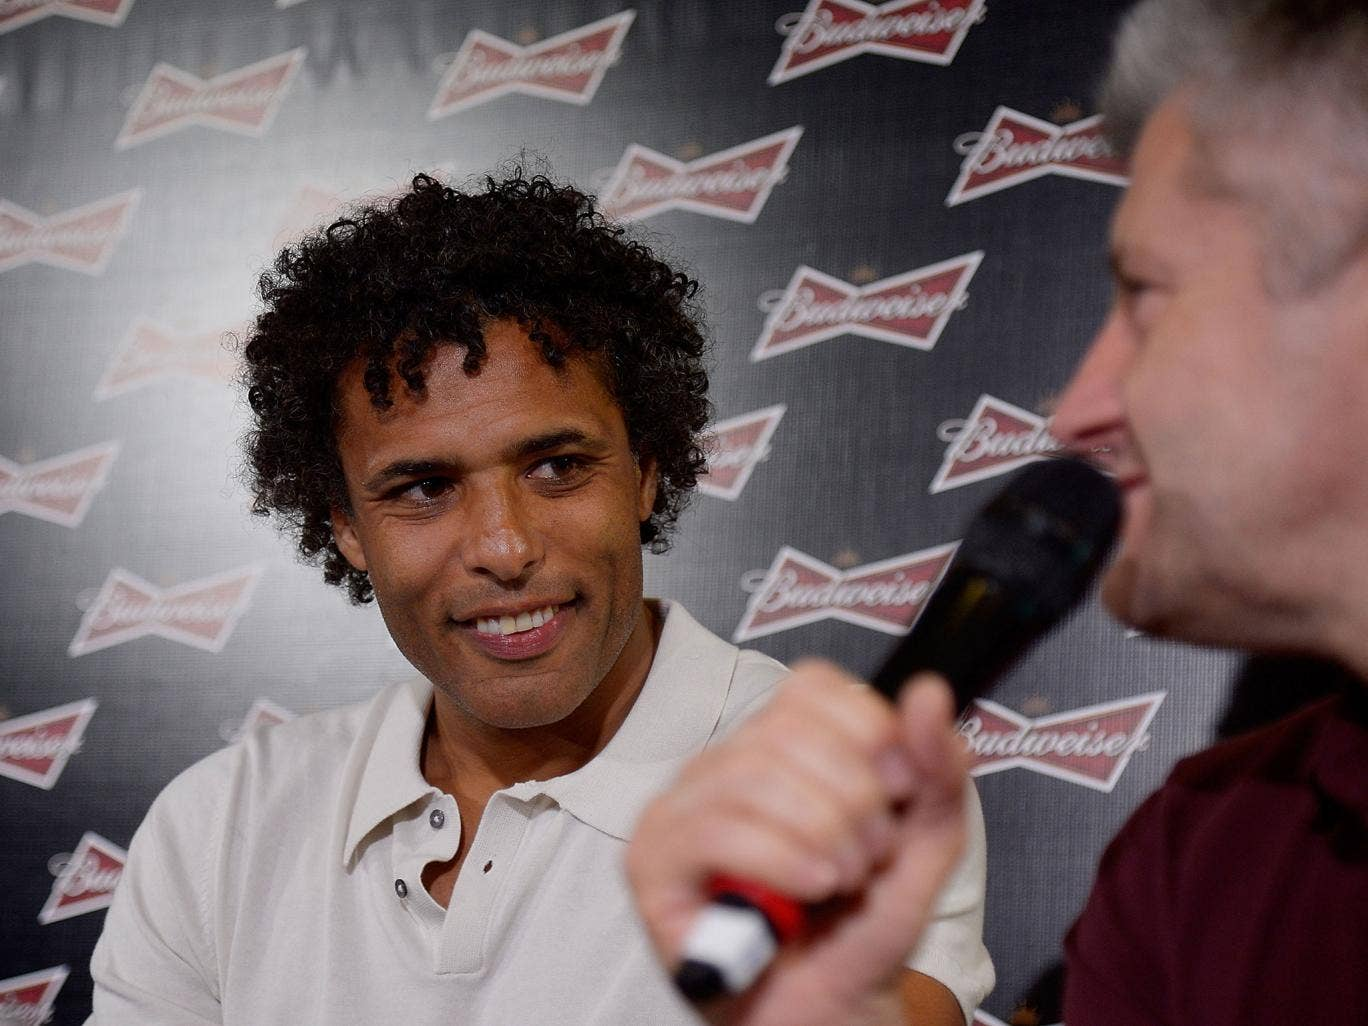 Pierre van Hooijdonk swore at a Mexico fan during an argument